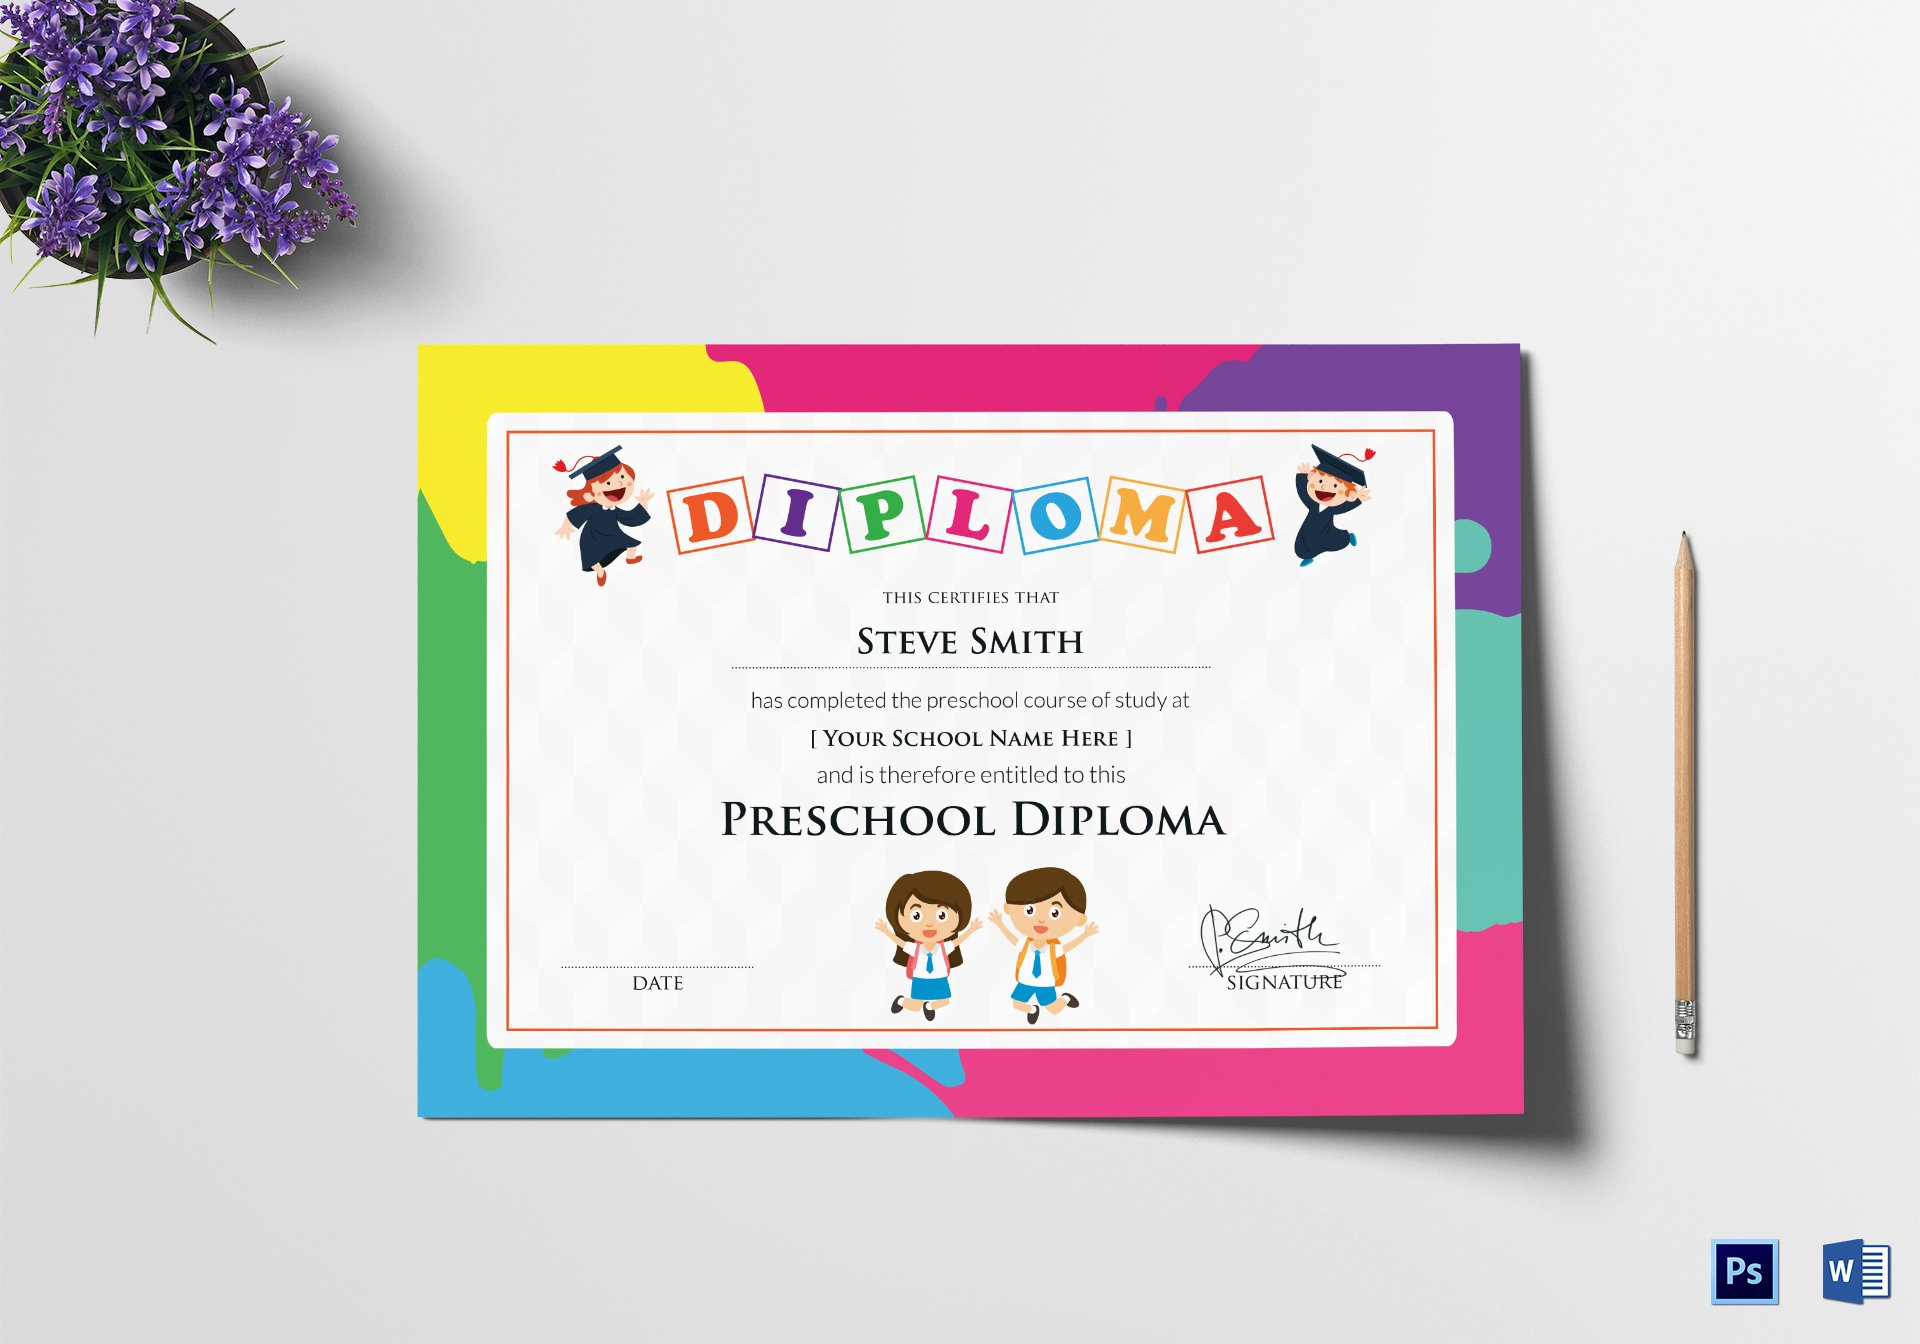 Kindergarten Diploma Template Free Lovely Preschool Diploma Certificate Design Template In Psd Word